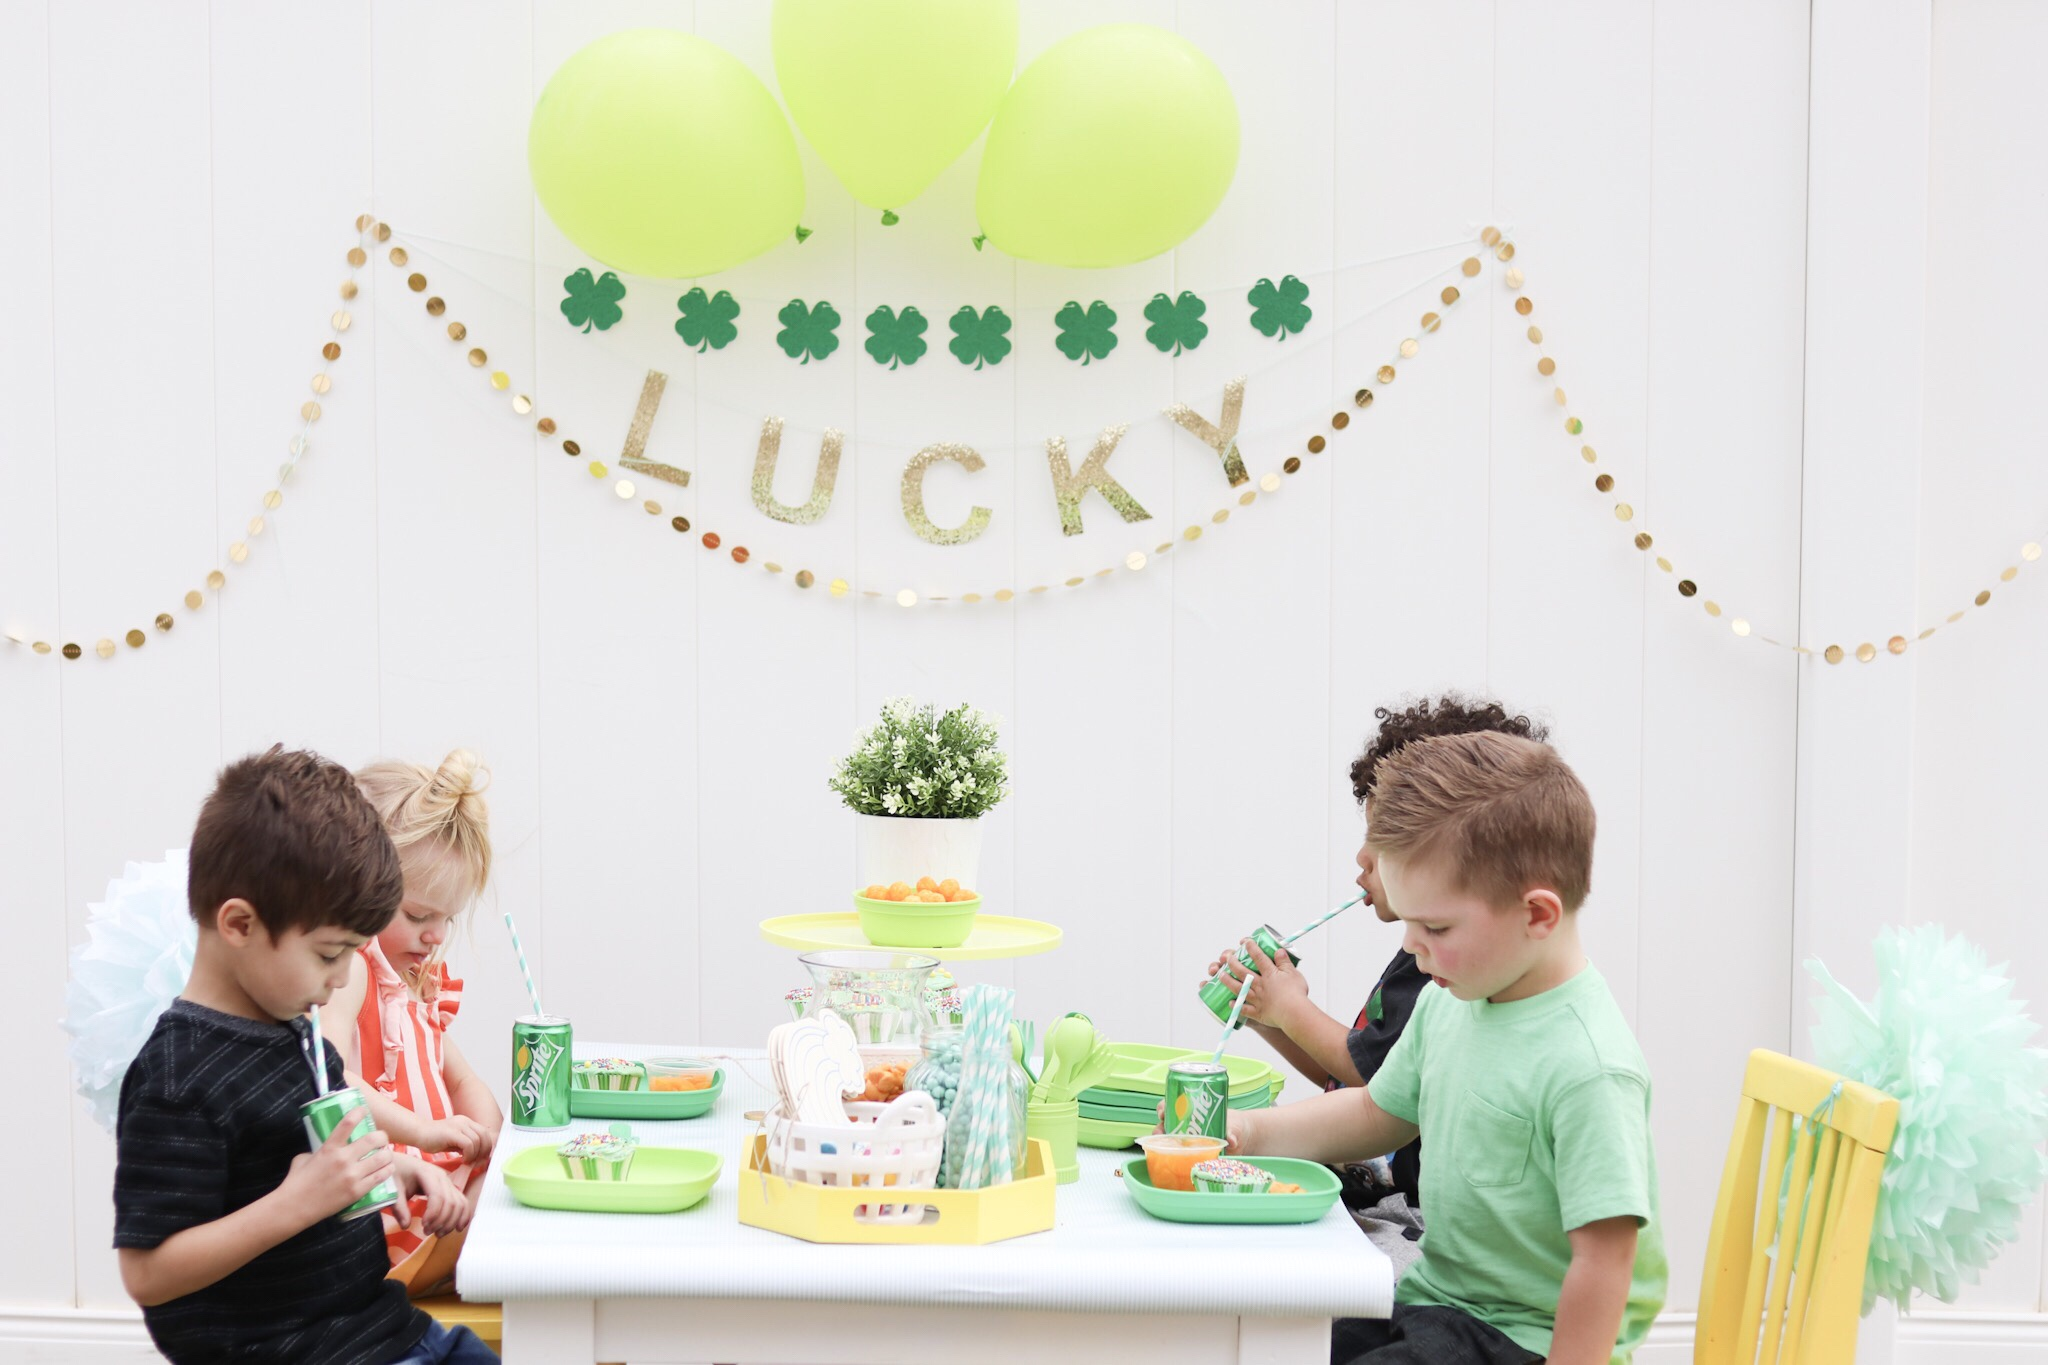 St Patricks Day Playdate – Steps To Make The Perfect Festive Playdate